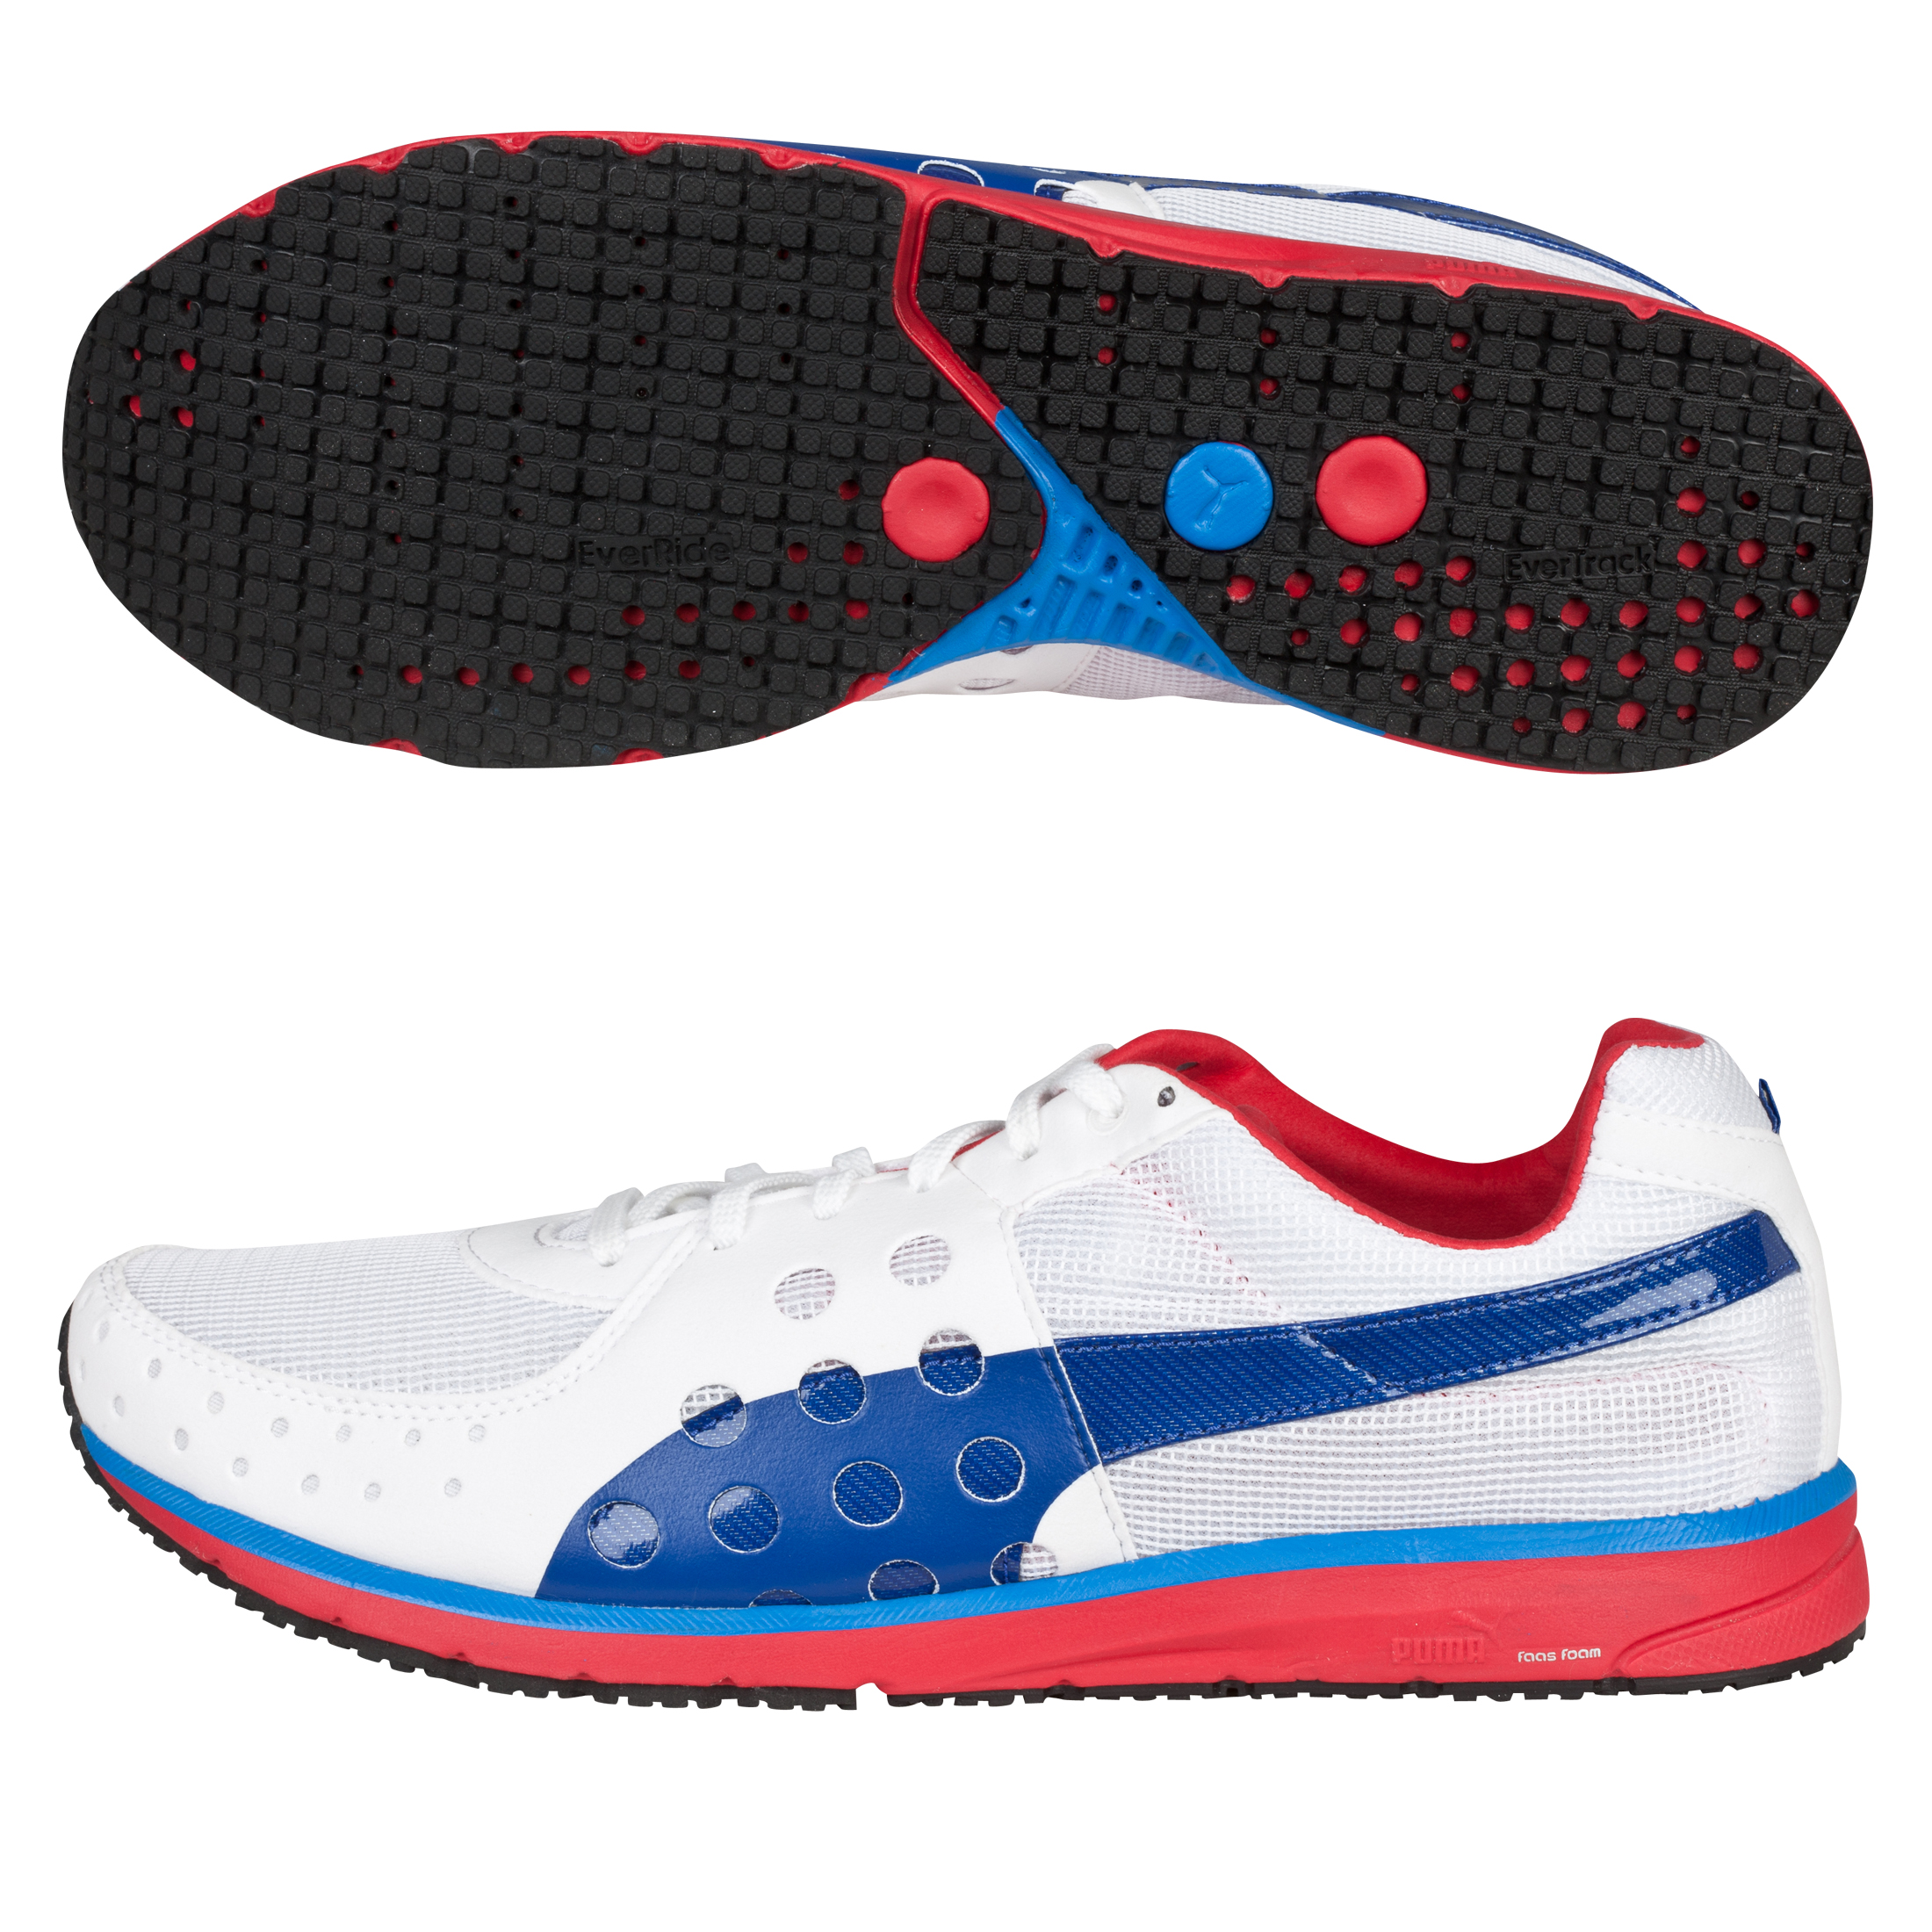 Puma Faas 300 Running Trainers - White/Ribbon Red/Limoges